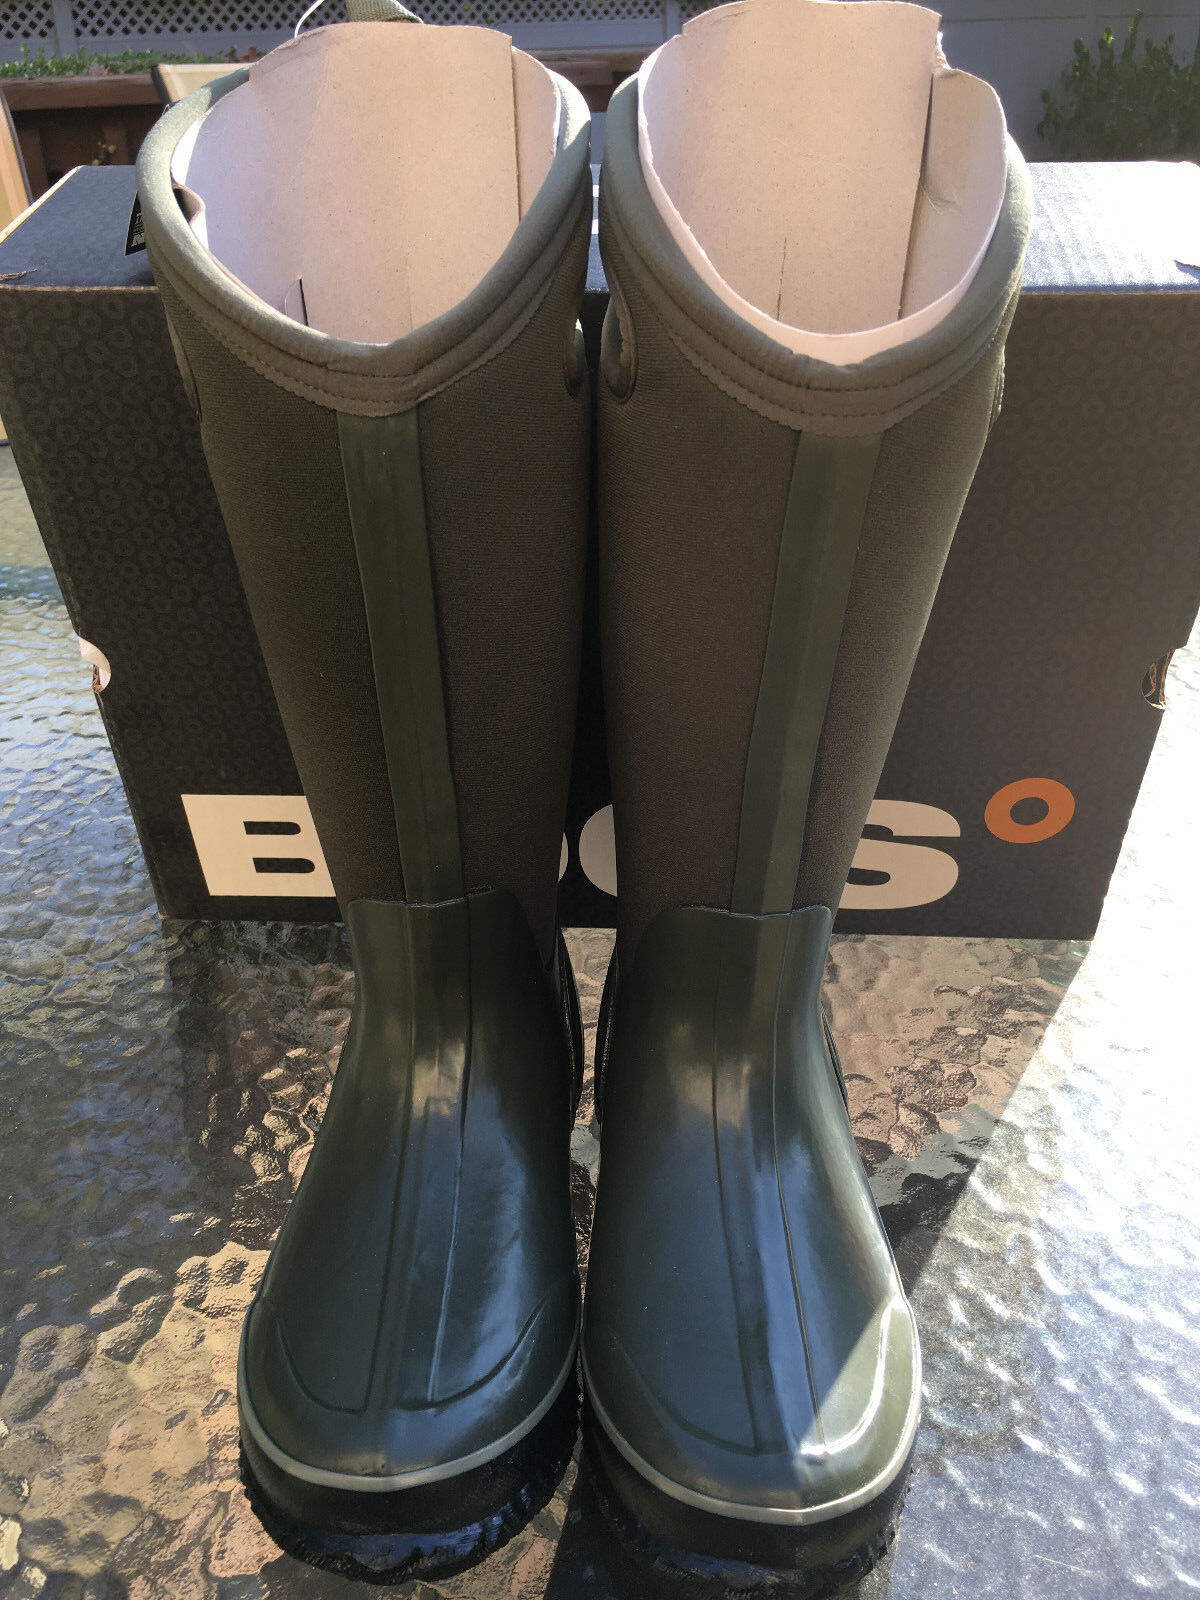 BOGS Classic High Handles Womens Insulated boots in Green Size-6US 37EUR